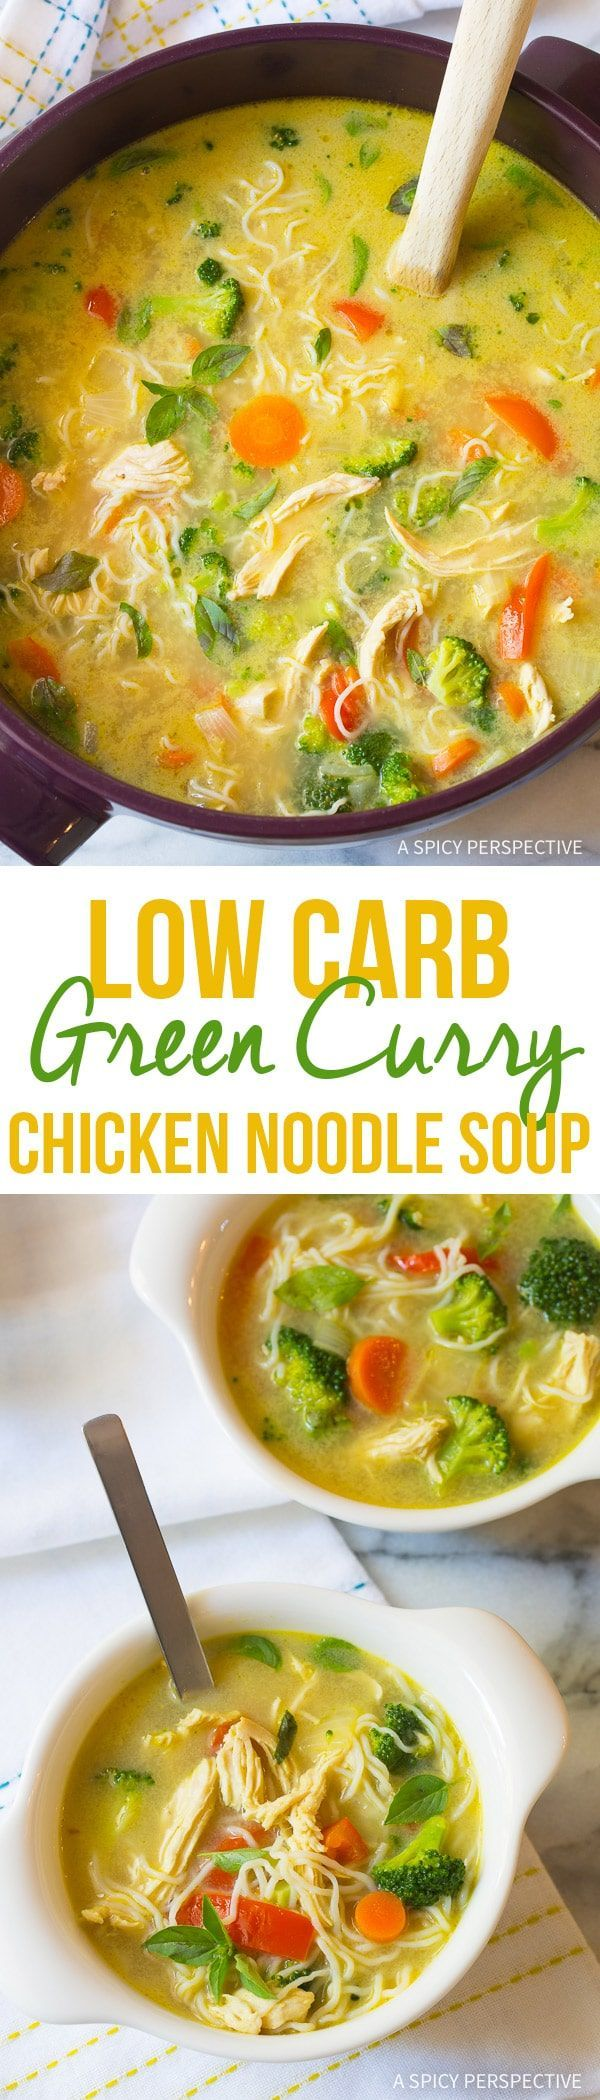 Low Carb Green Curry Chicken Noodle Soup Recipe – A fabulous paleo (and  ketogenic diet) chicken soup with with zesty exotic flavor and fragrant  herbs!